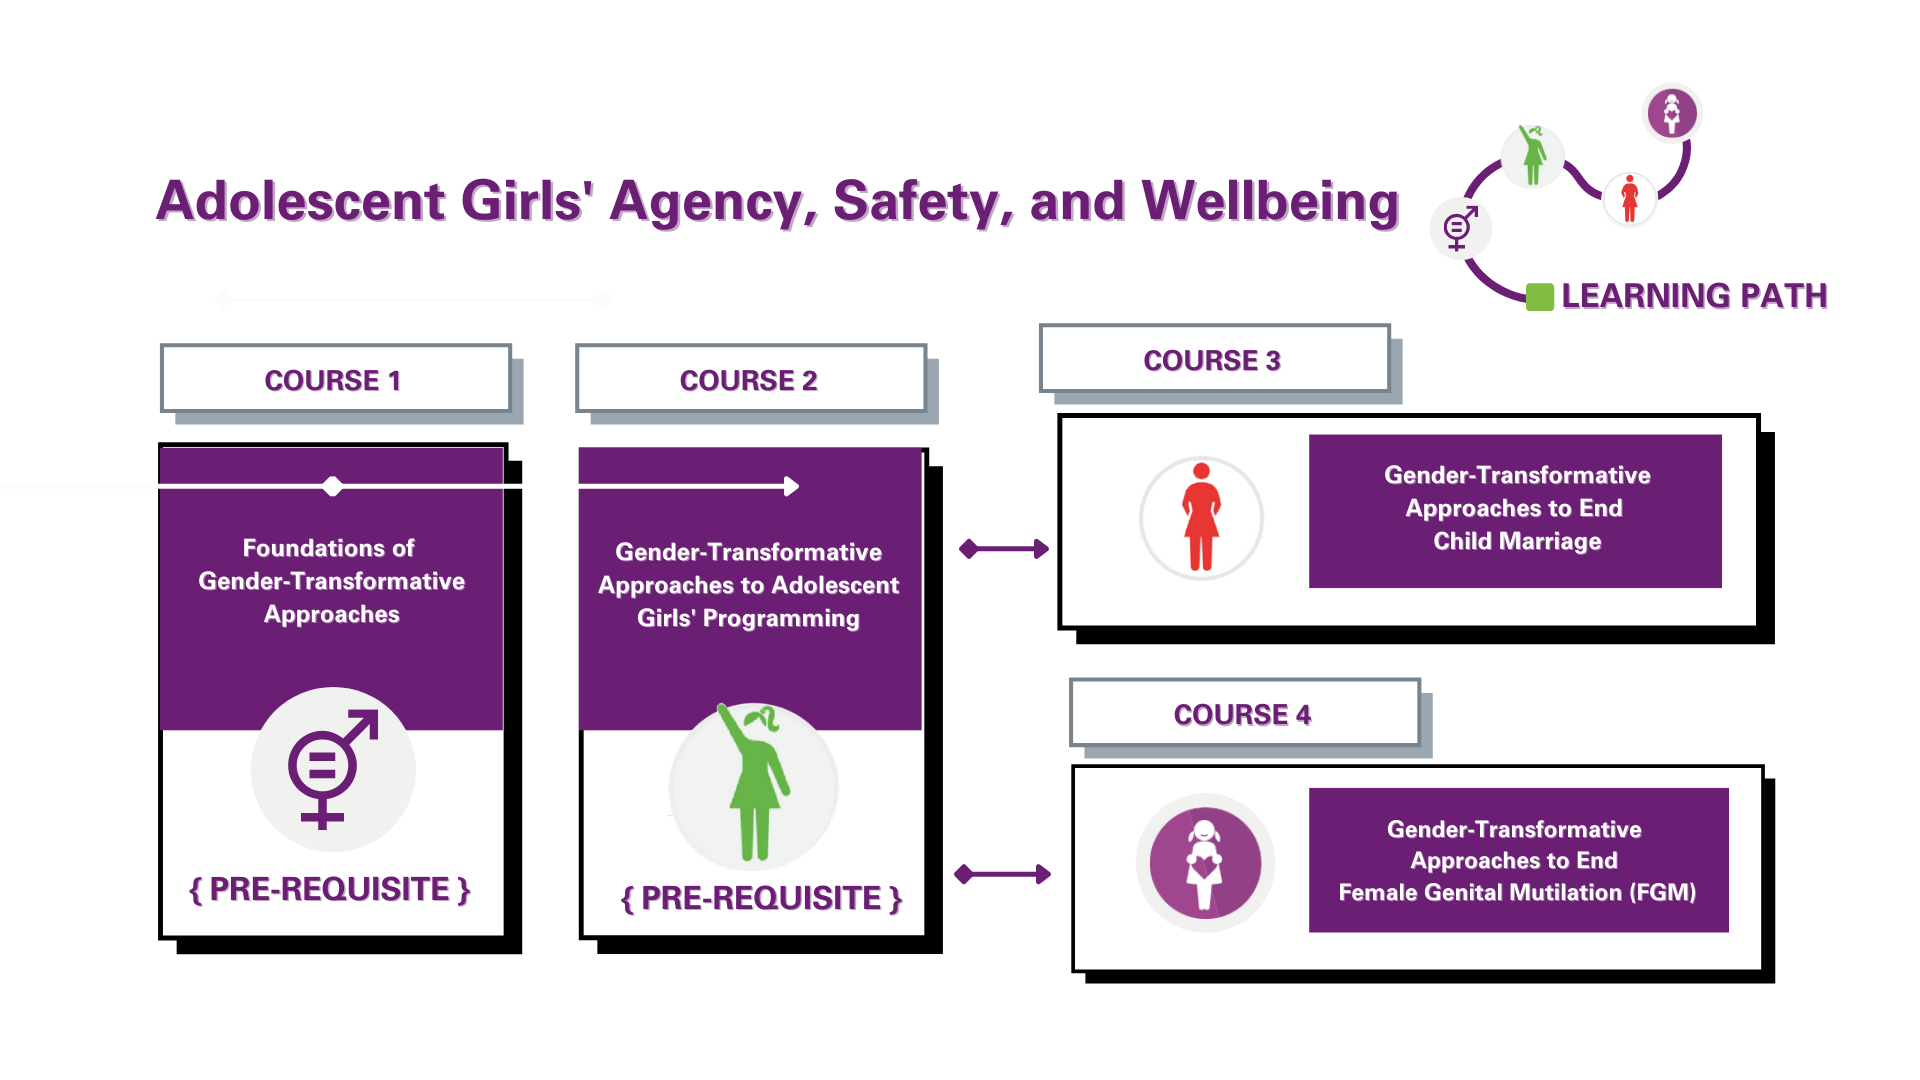 The Adolescent Girls' Agency, Safety and Wellbeing learning path